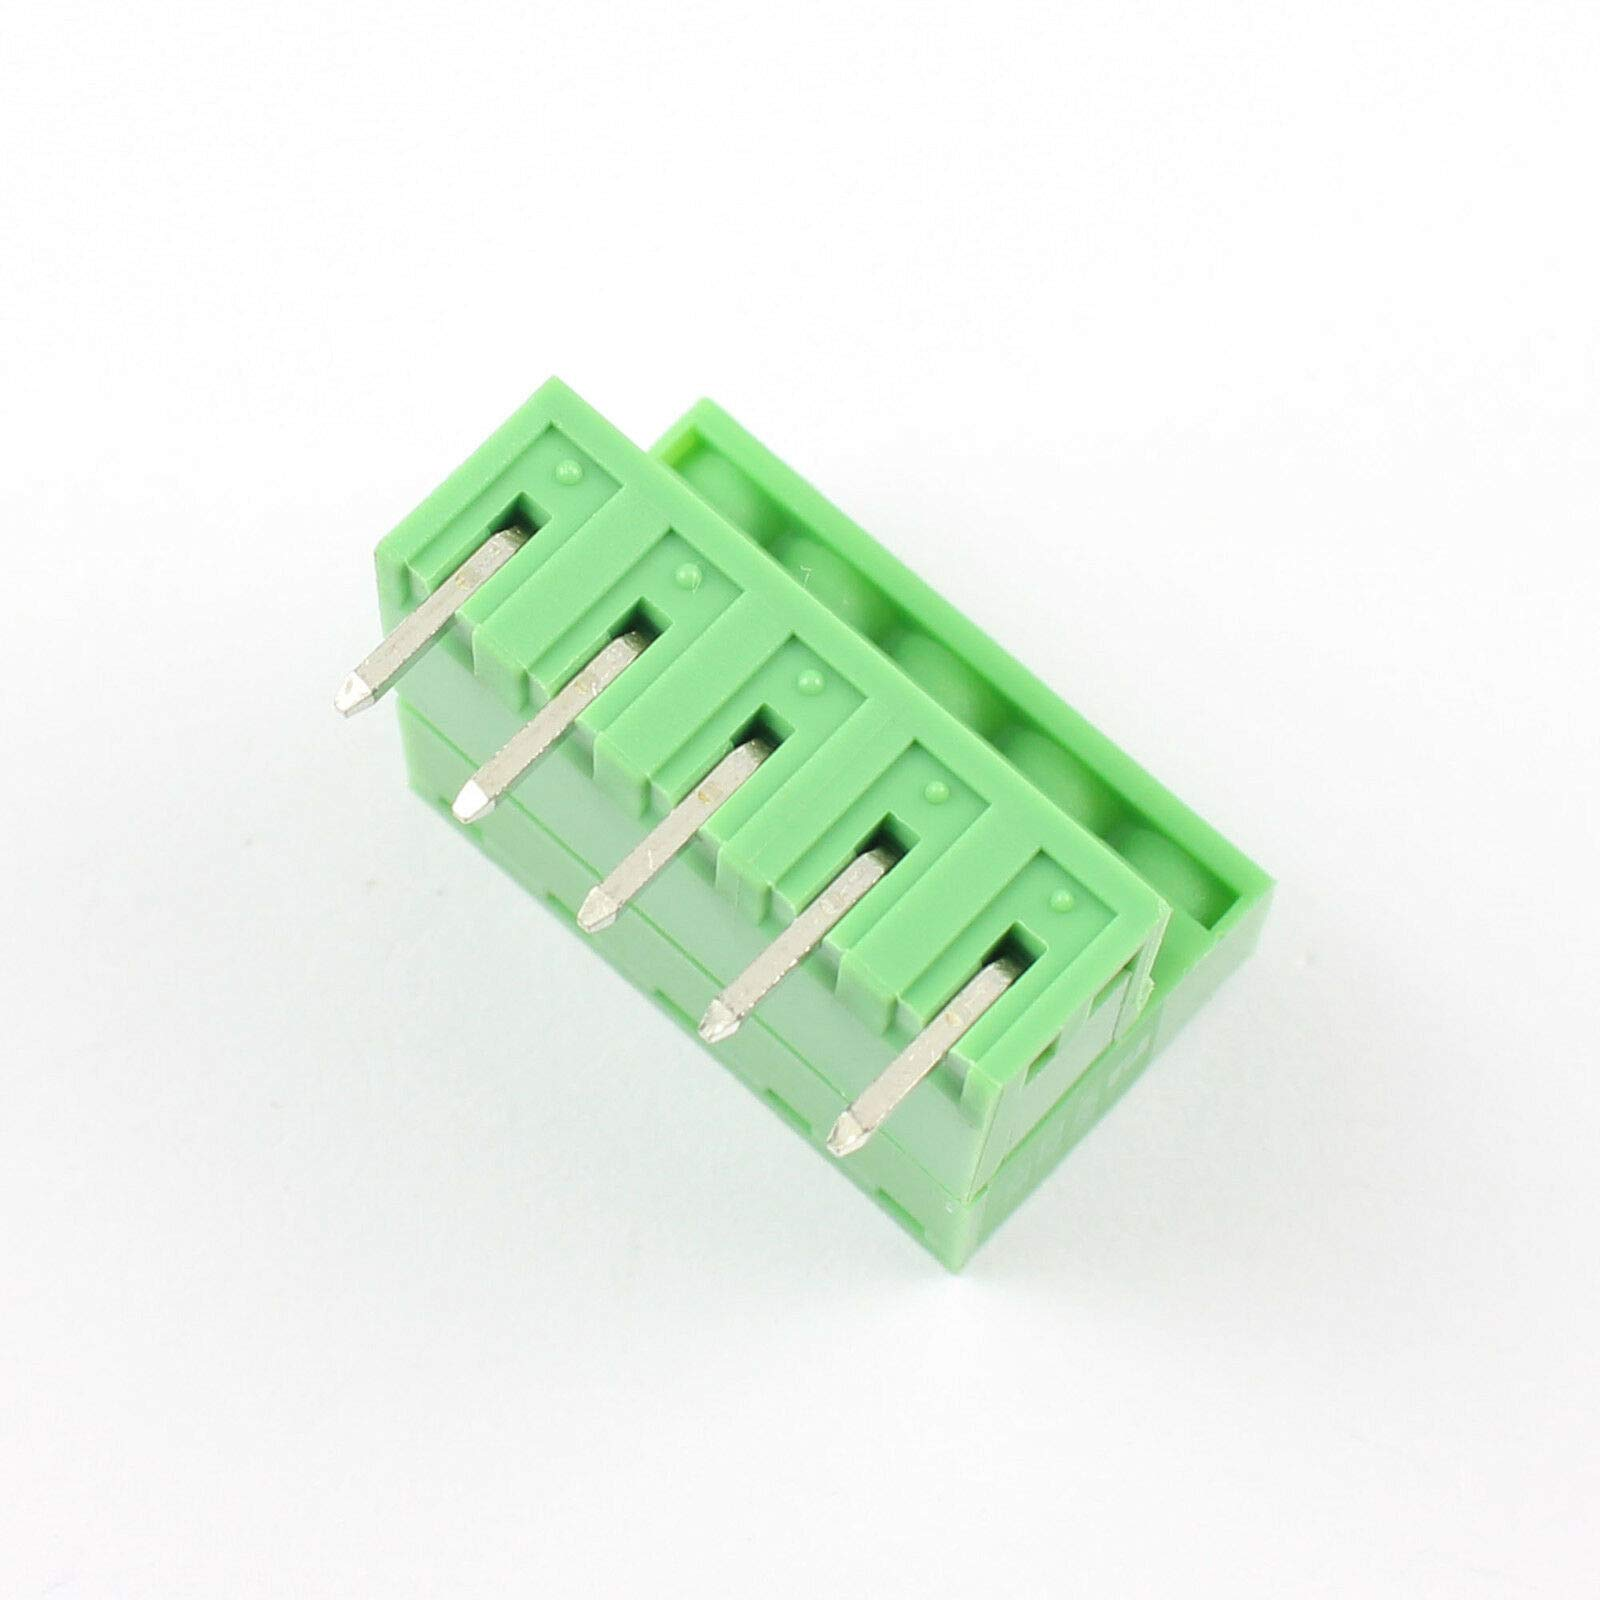 DBParts 10pcs 7-Pin 7 Pole Plug-in Screw Terminal Block Connector 2.54mm 0.1 Pitch Panel PCB Mount DIY